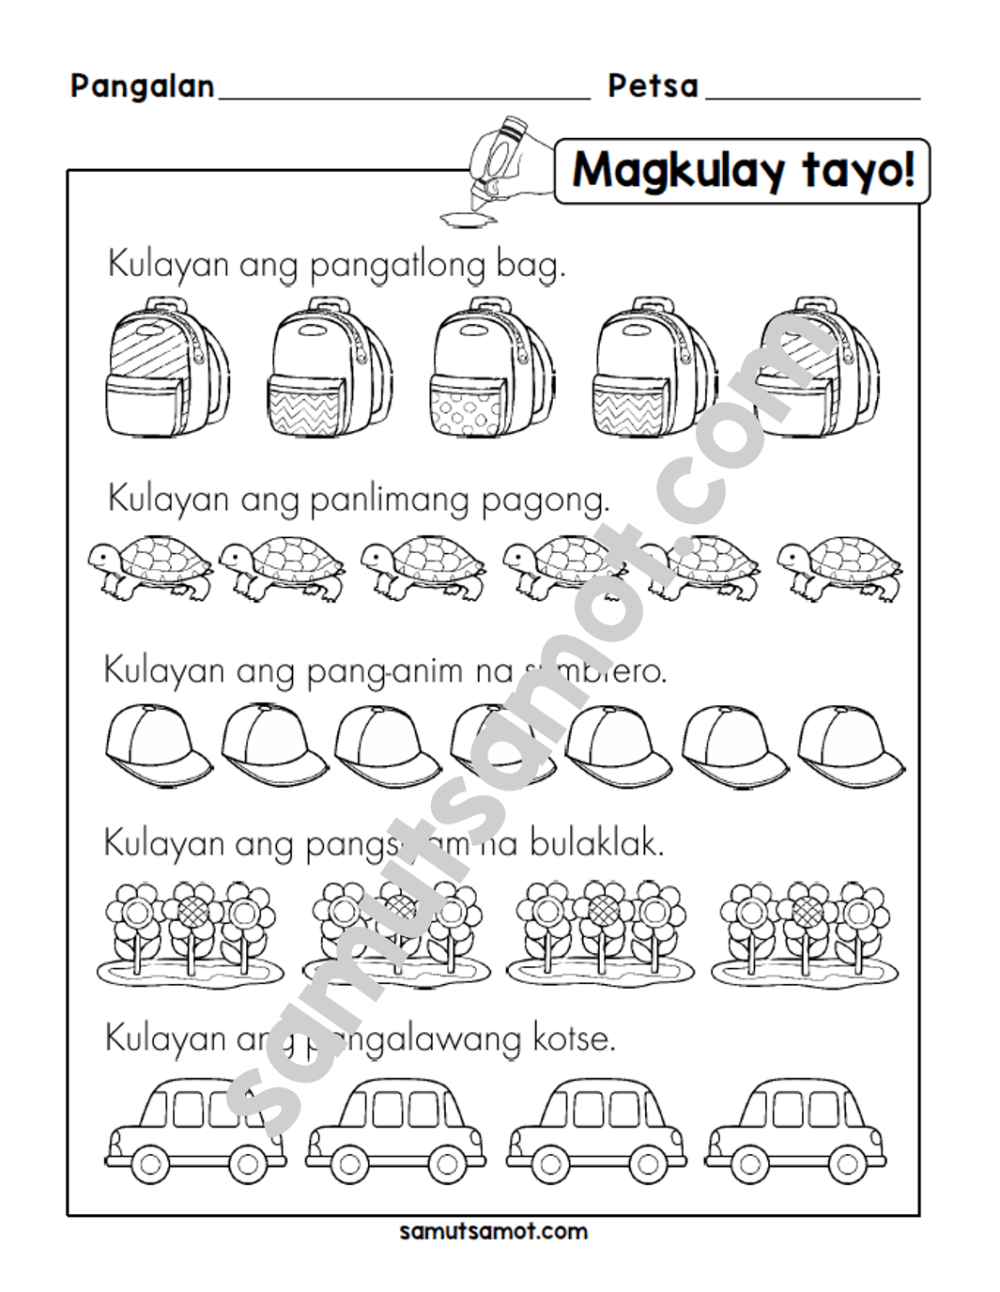 medium resolution of 19 Best Tagalog Worksheets images on Worksheets Ideas